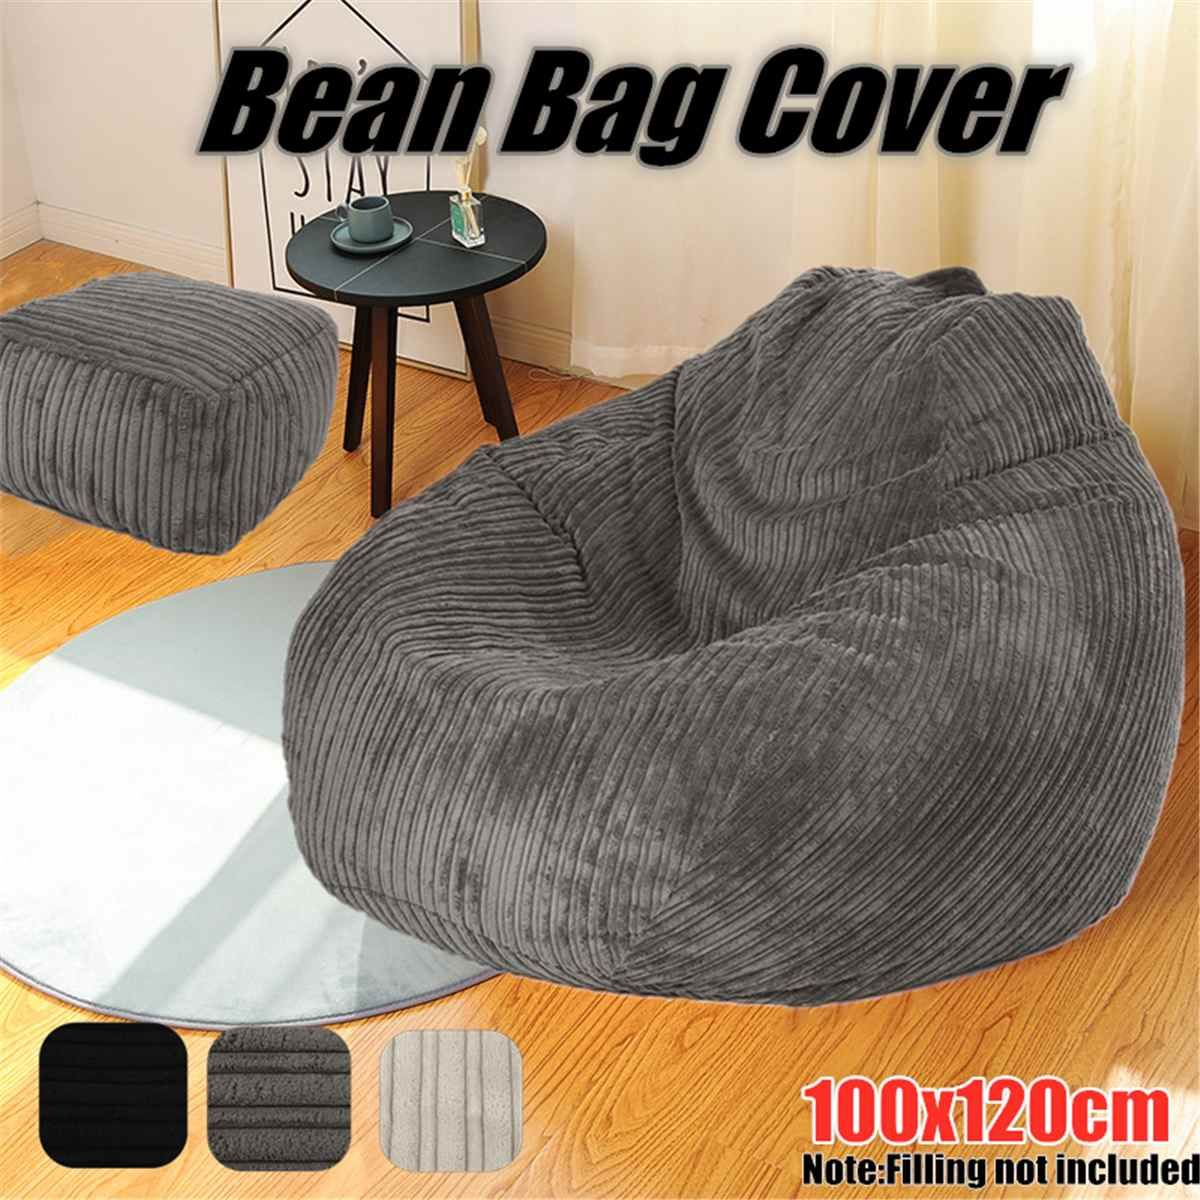 No Filler Bean Bag Chair Lazy Sofa Soft Corduroy Bean Bag Cover Large Lazy Lounger High Back Bean Bag Chair for Adults and Kids